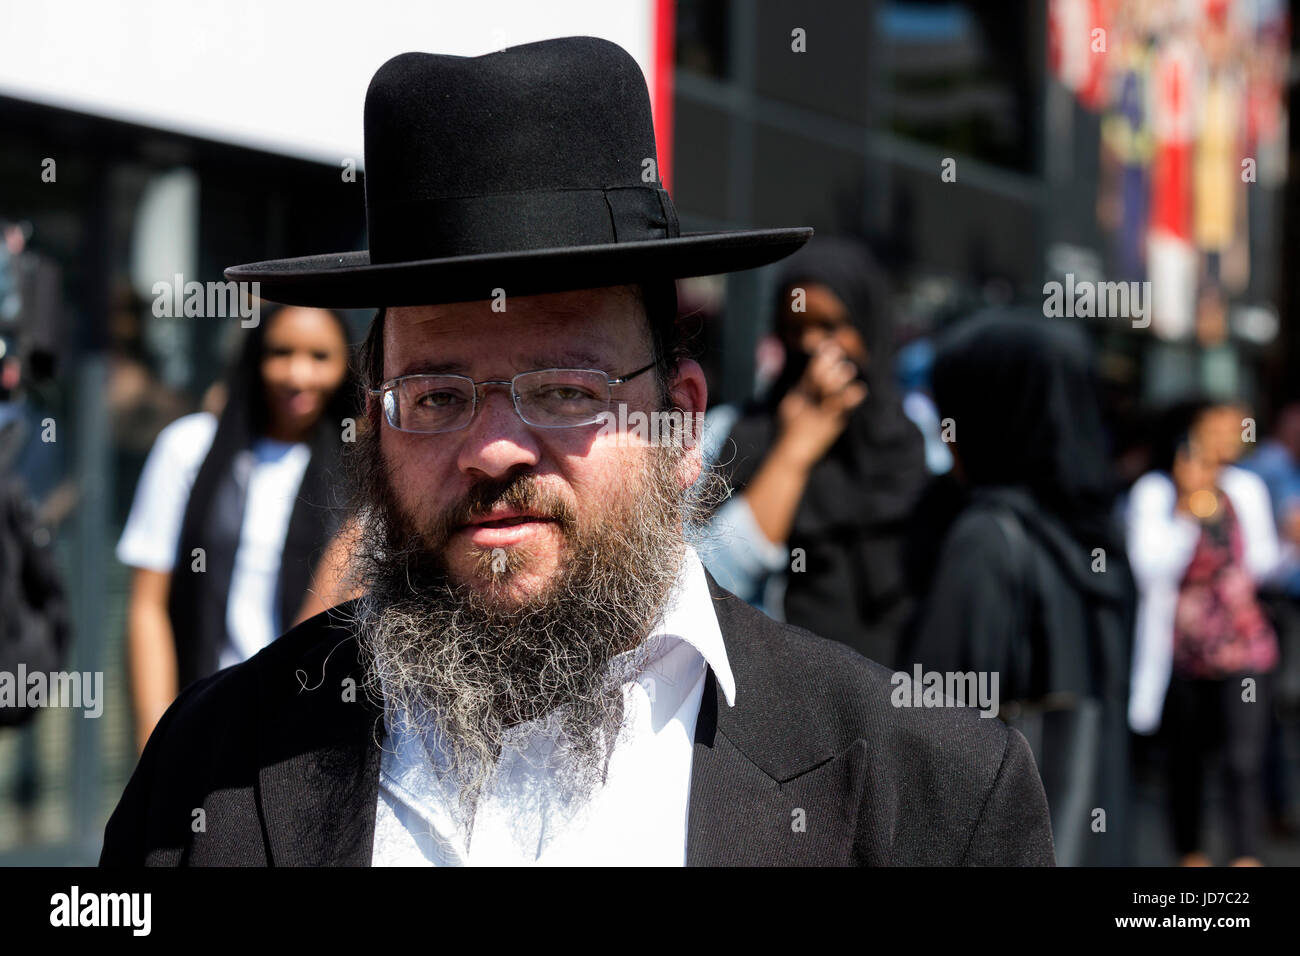 London, UK. 19 June 2017. A Jewish man and Muslim women gather at the site of a suspected terrorist attack with - Stock Image